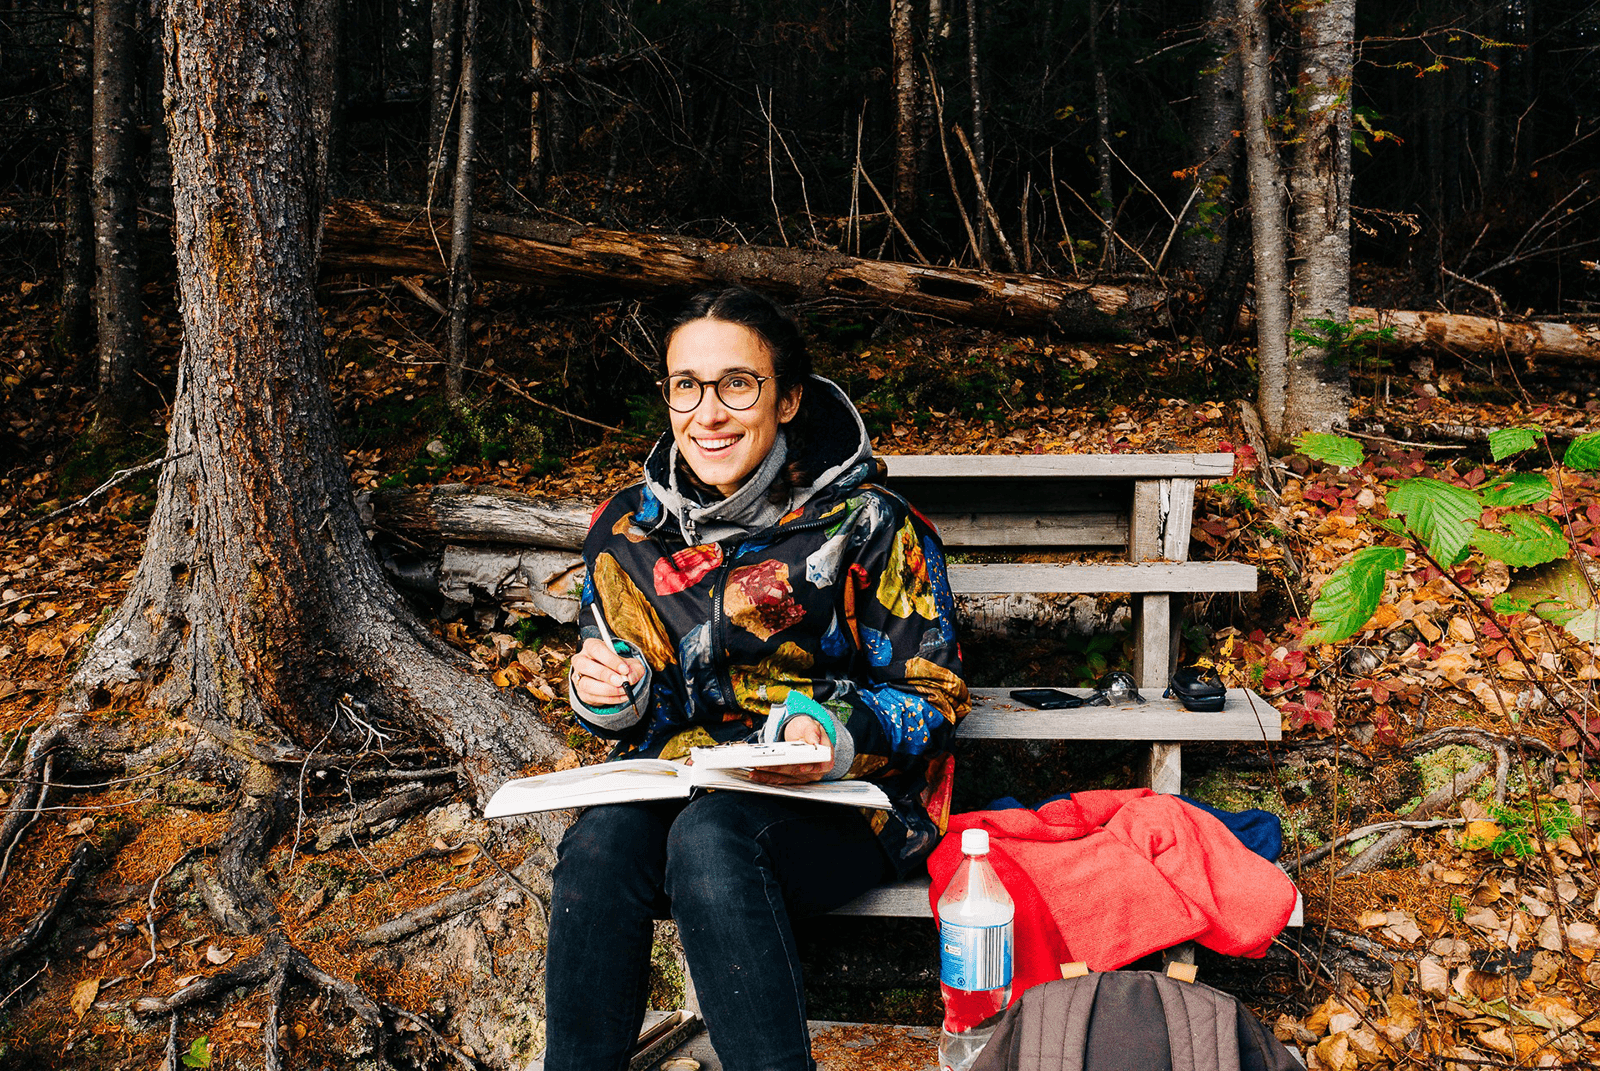 Amandine Thomas sketching in Canada